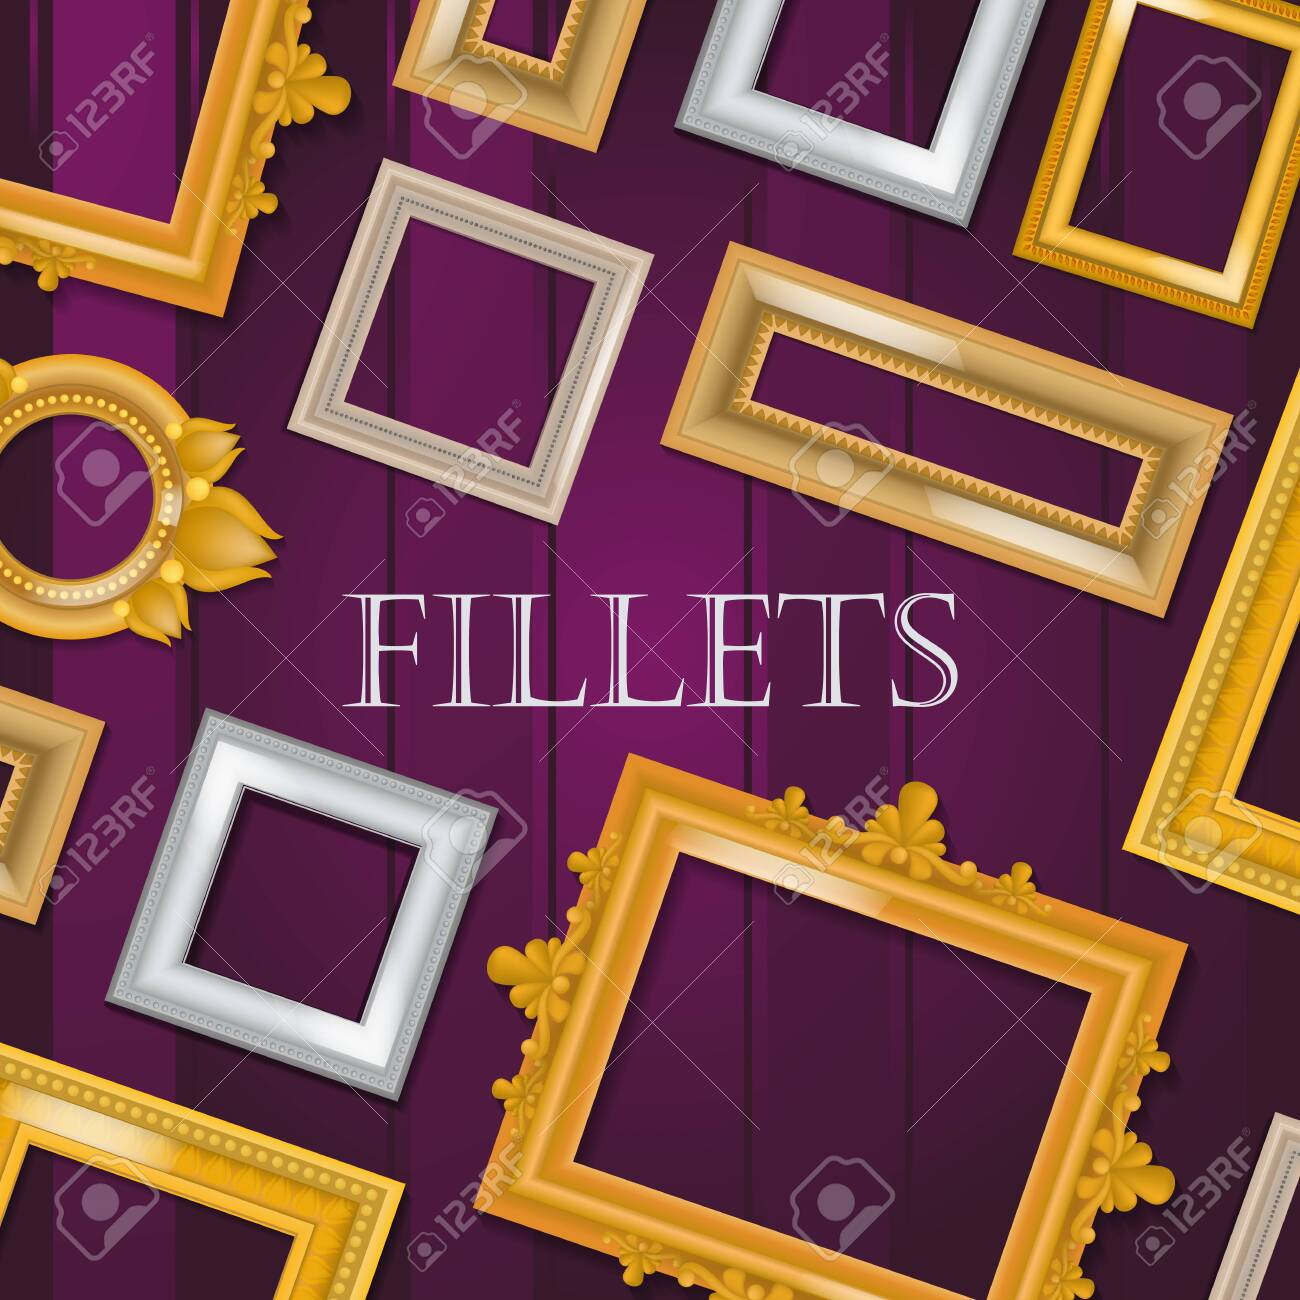 Picture Framing Banner Flyer Poster Vector Illustration Online Royalty Free Cliparts Vectors And Stock Illustration Image 124064678